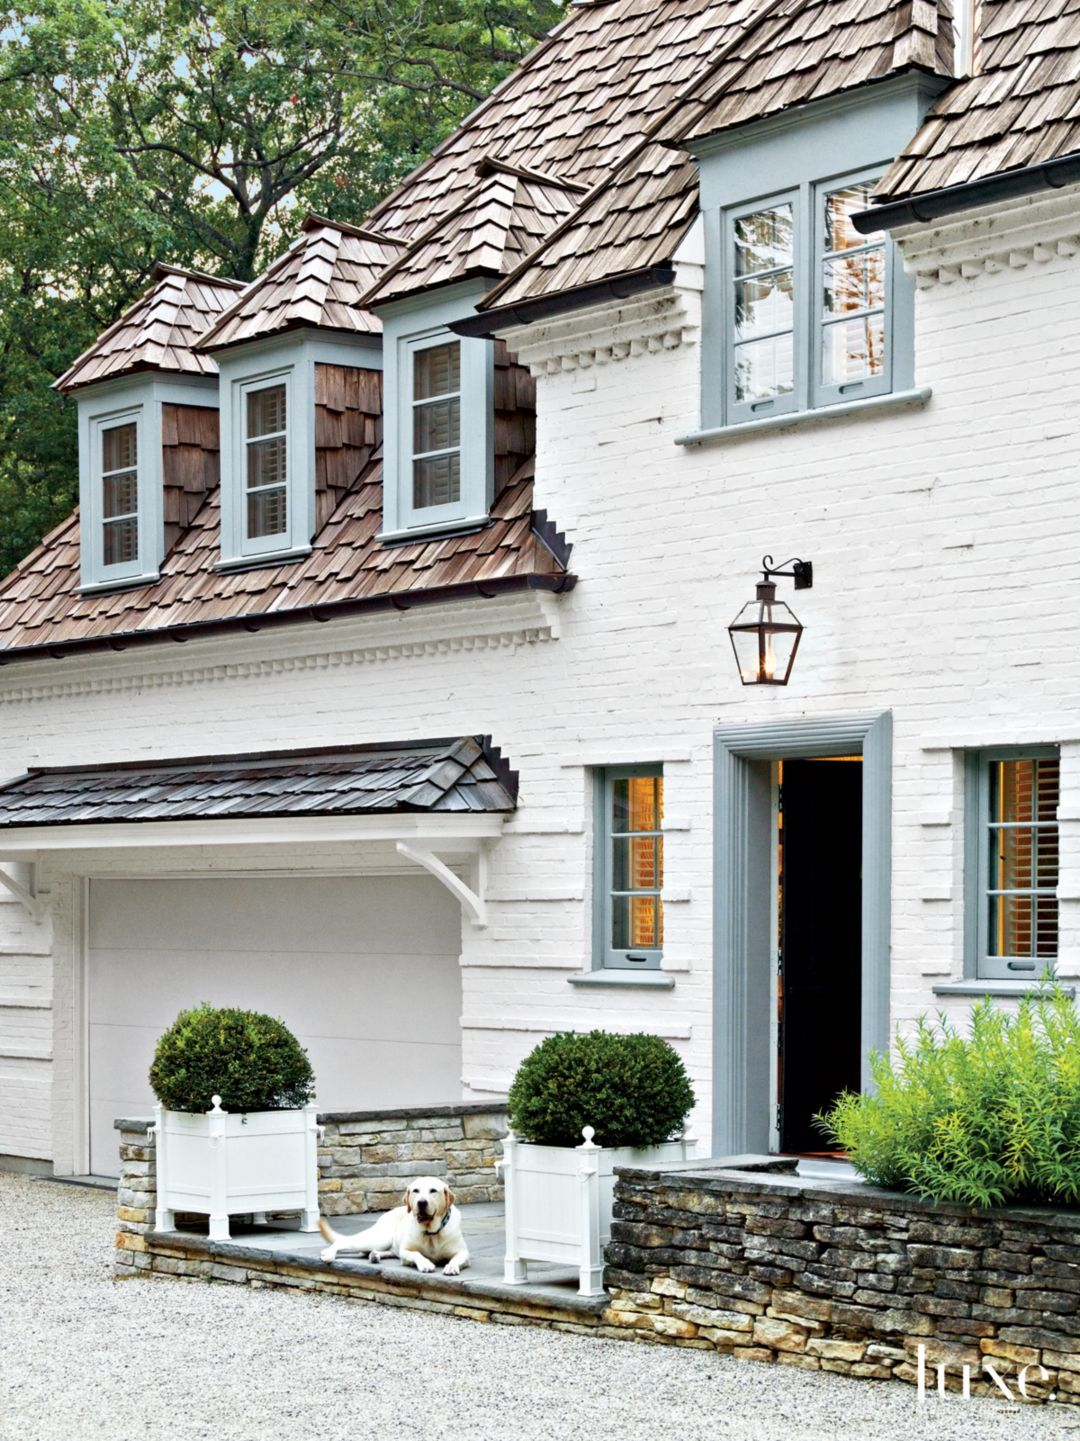 Pin by Shay Antoniades on Painted Brick Exteriors | Pinterest ...